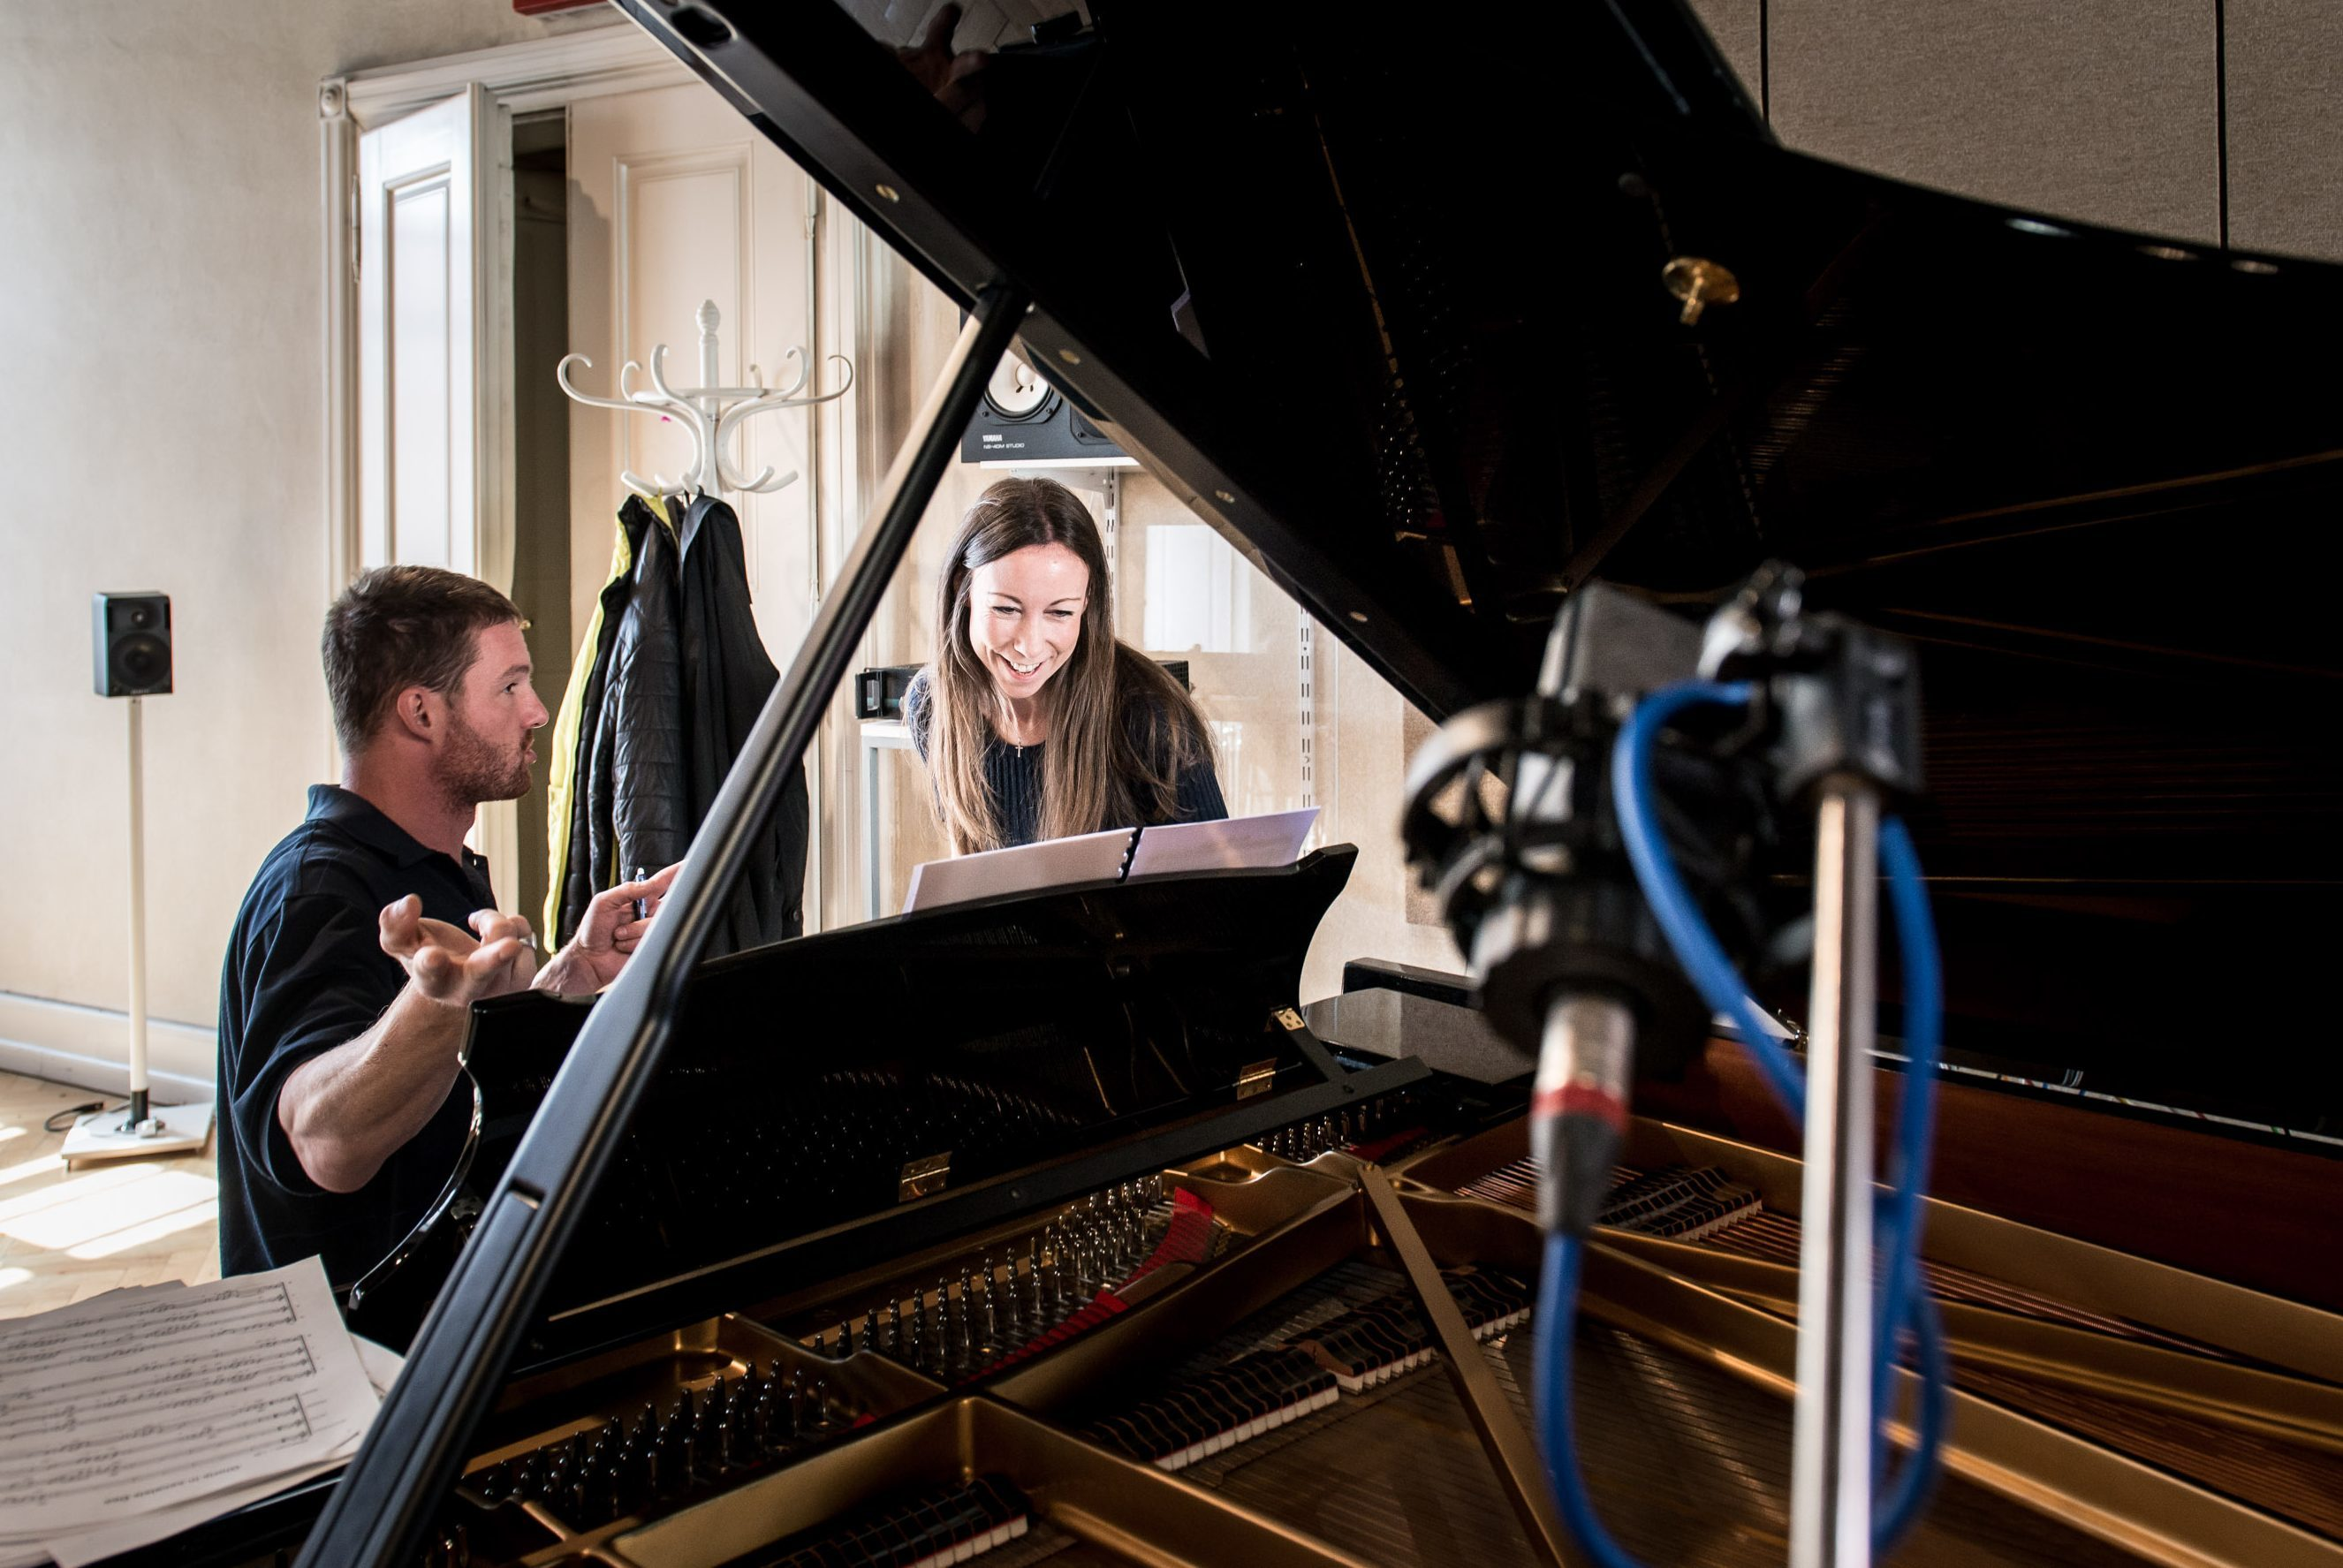 Composer Helen MacKinnon joins conductor Jiří Petrdlík,  at the recording session in Prague.